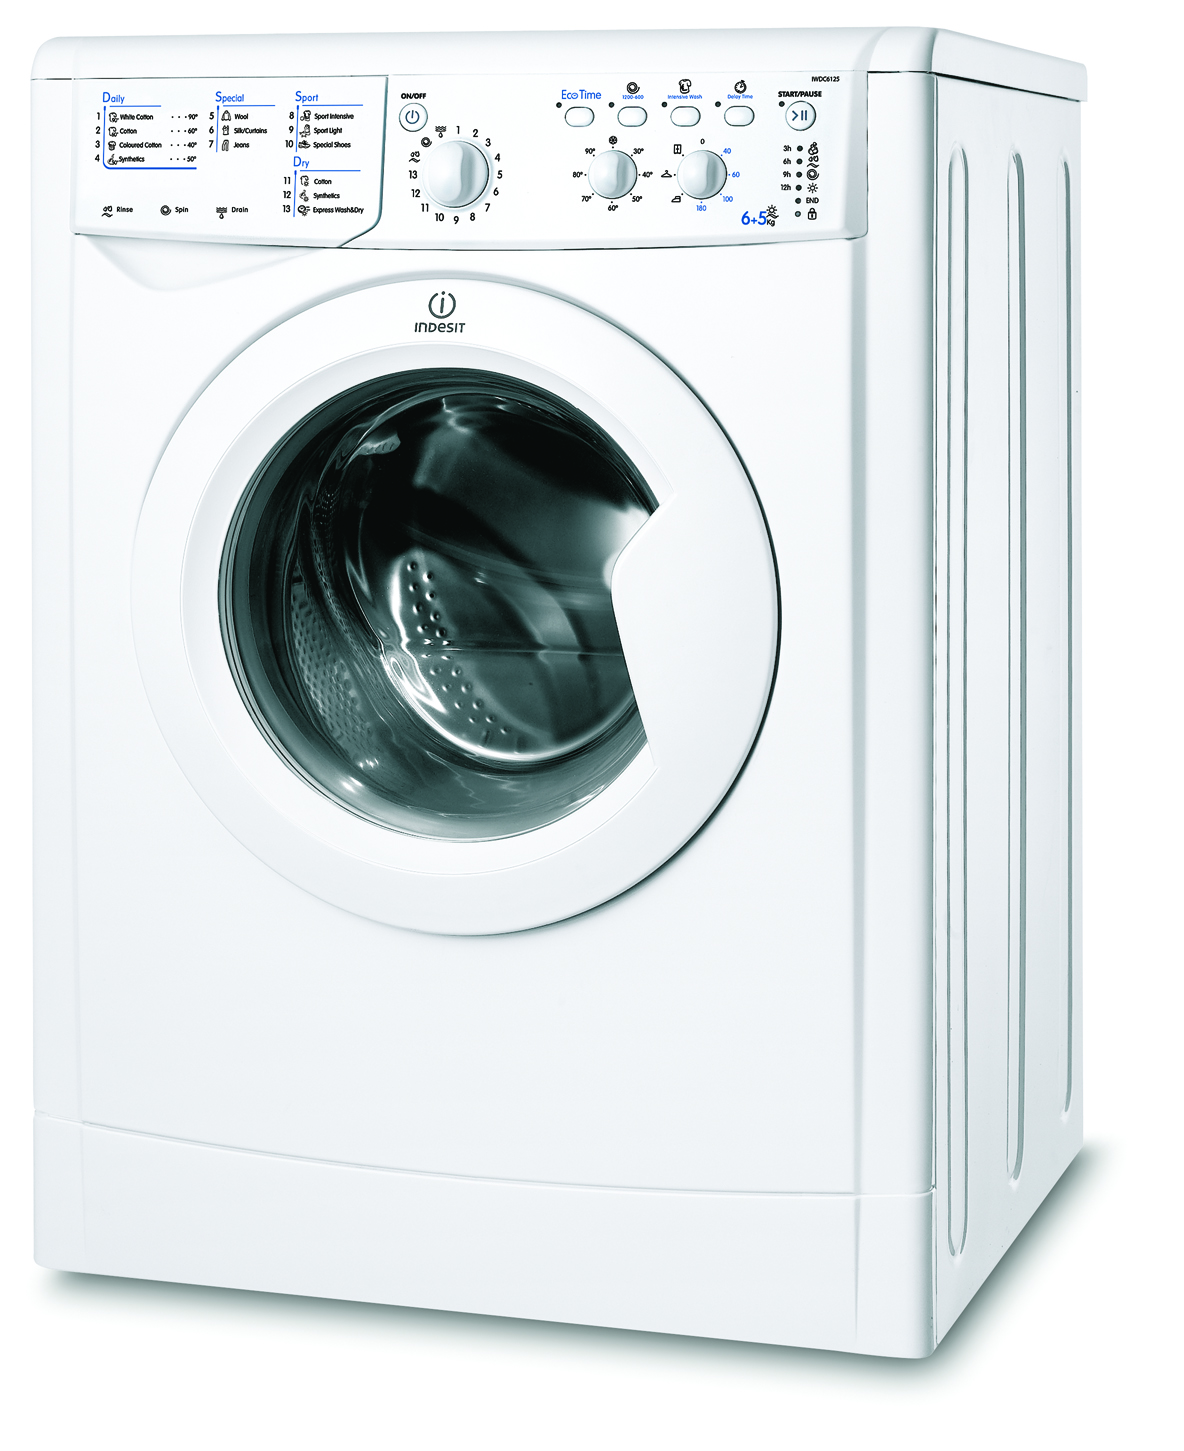 buy washer dryers in london indesit iwdc6125 washer. Black Bedroom Furniture Sets. Home Design Ideas